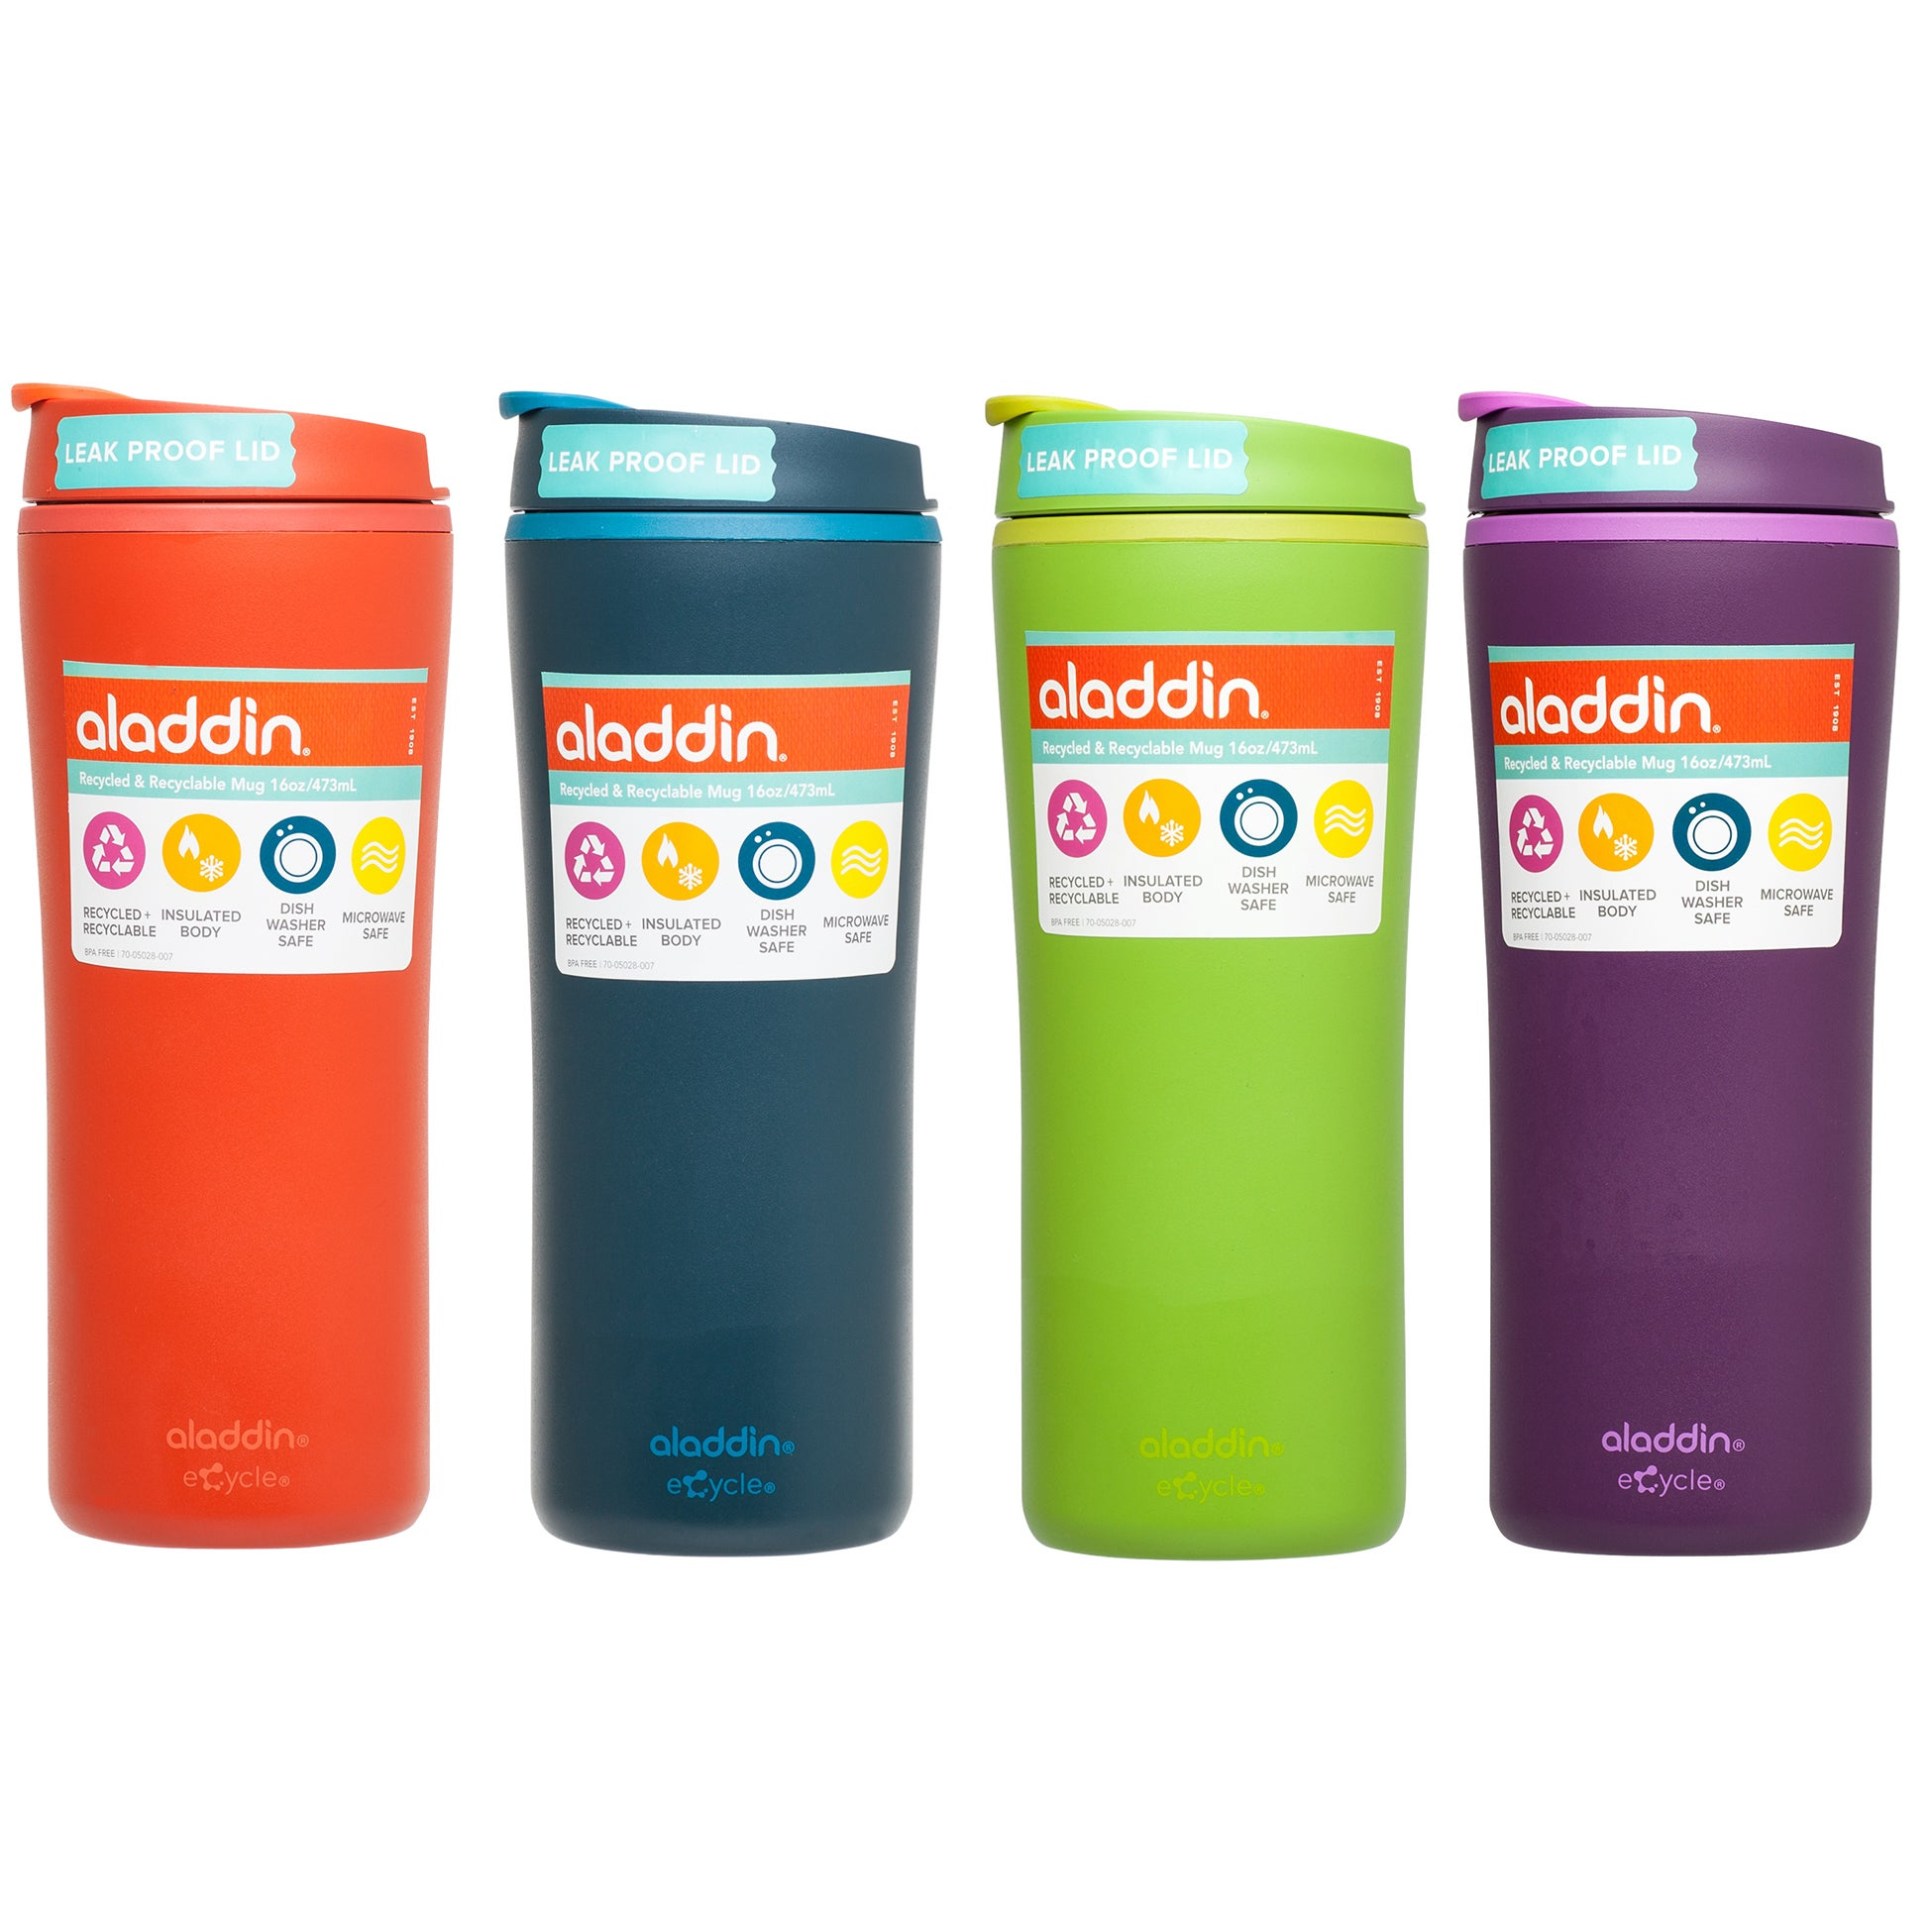 331a53f8ccd Aladdin 10-01927-001 16 Oz. Recycled/Recyclable Mug Assorted Colors